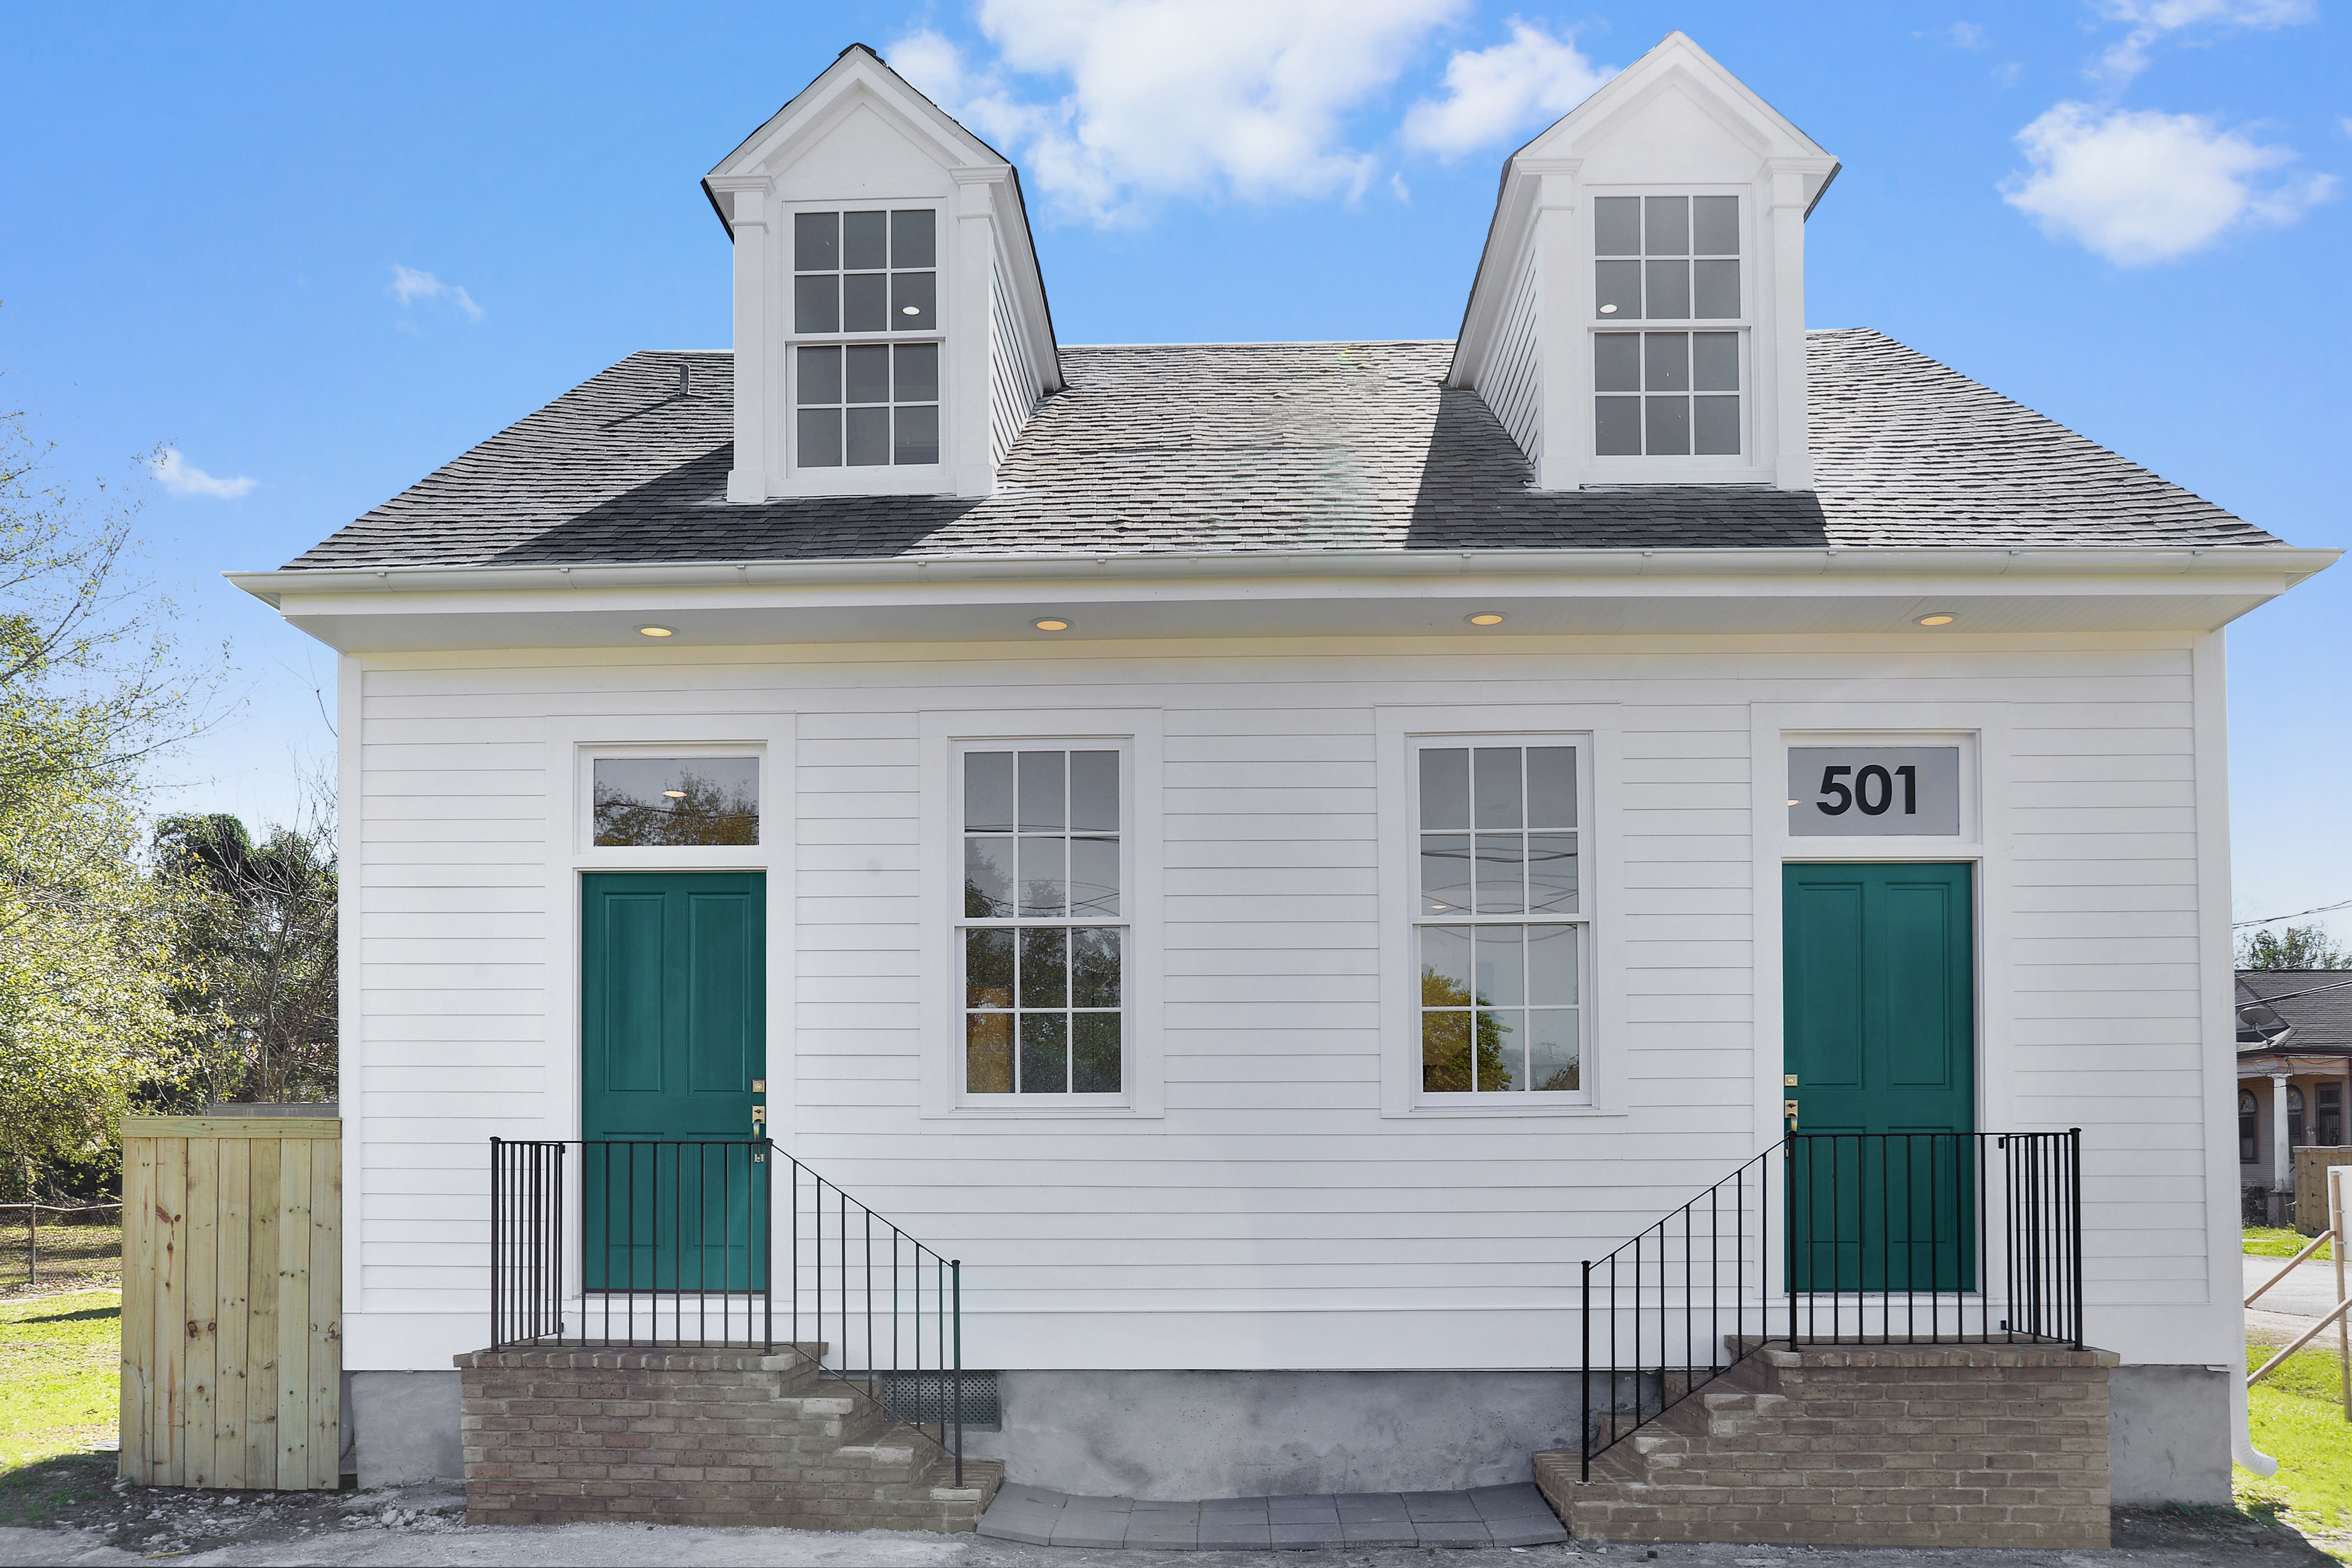 New Orleans Treme Neighborhood Property Brothers